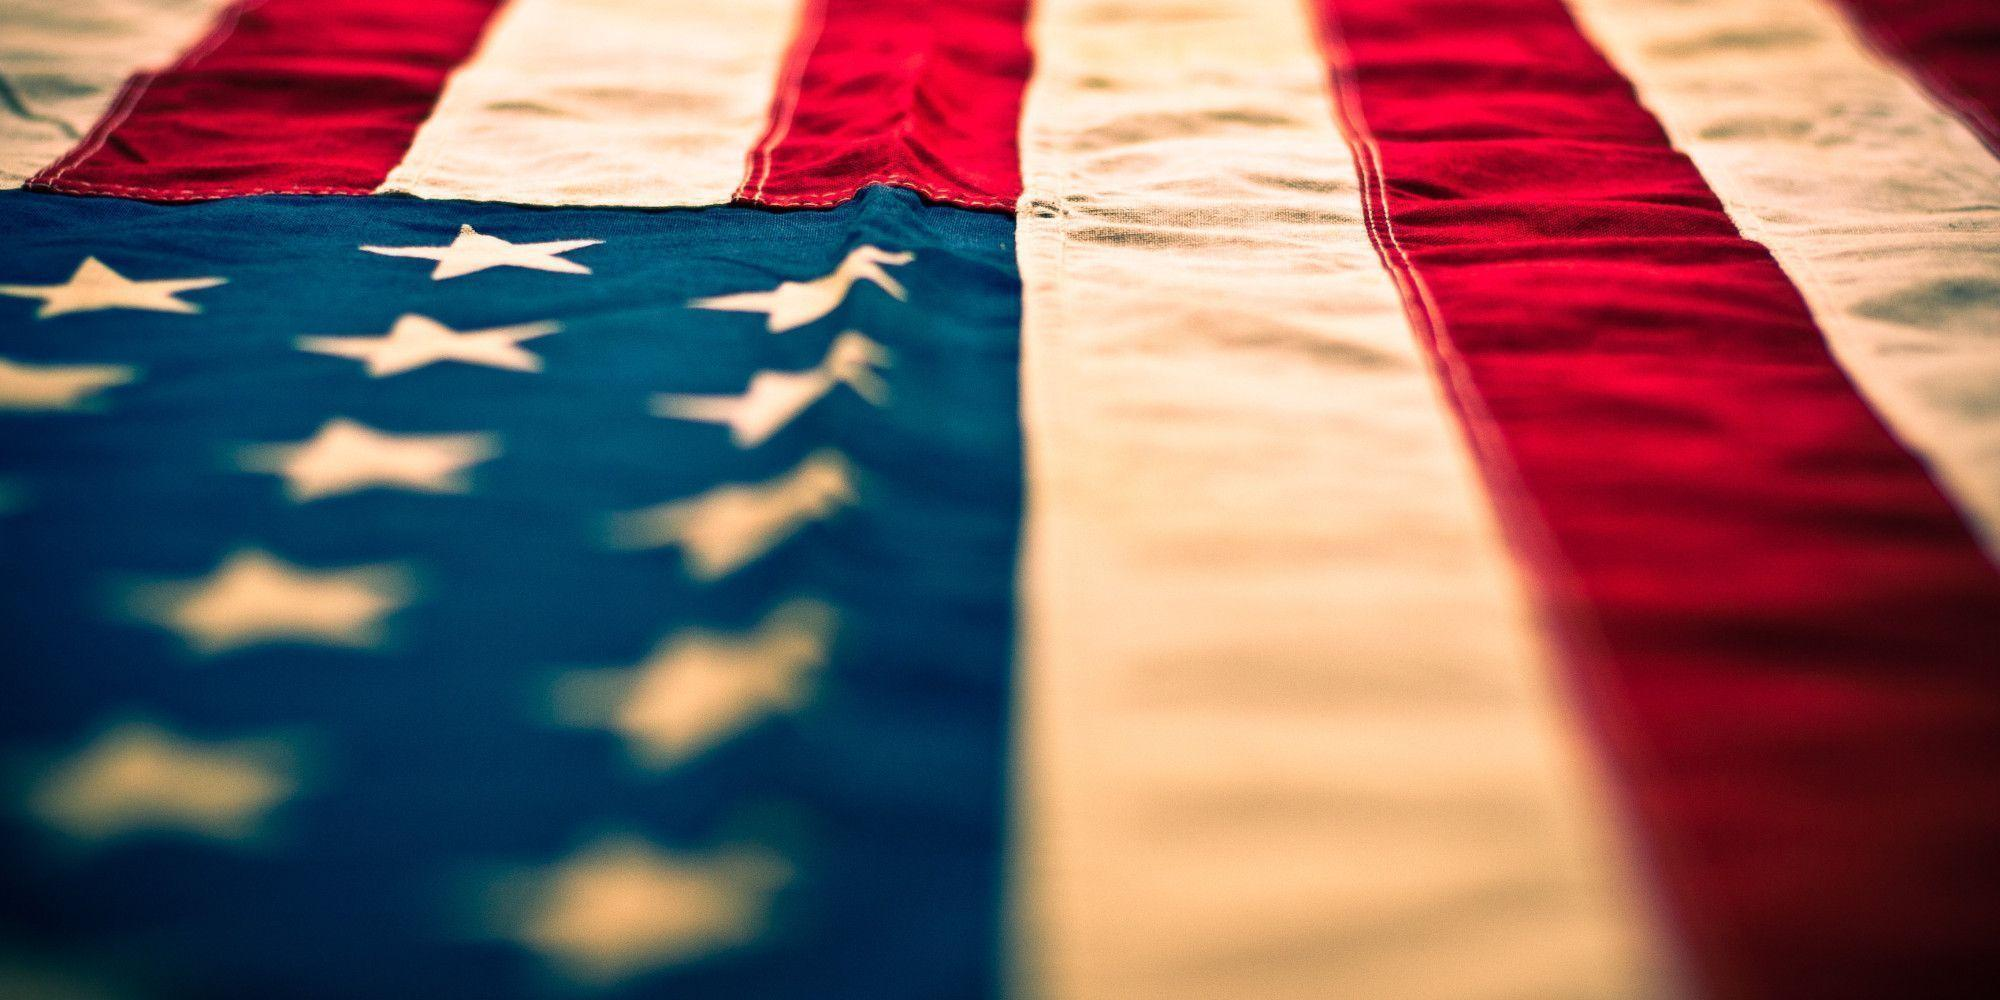 american flag background tumblr a desktop background wallpapers hd